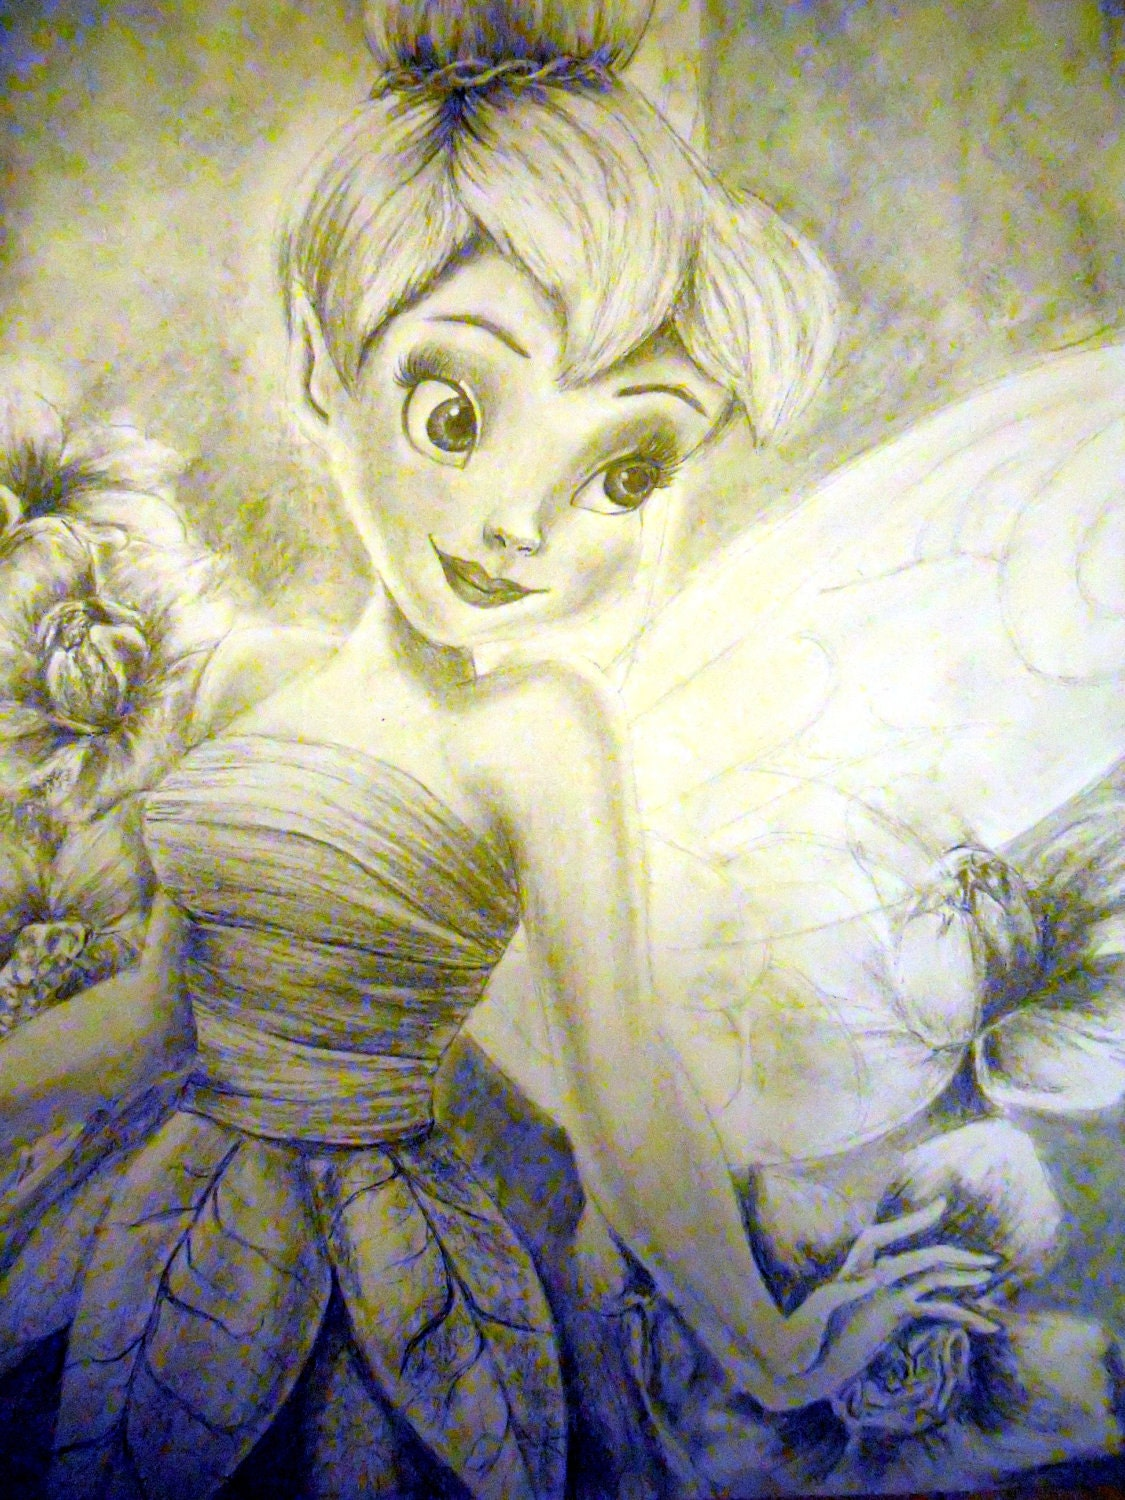 Drawing Of Tinkerbell With Flowers In Pencil And Charcoal